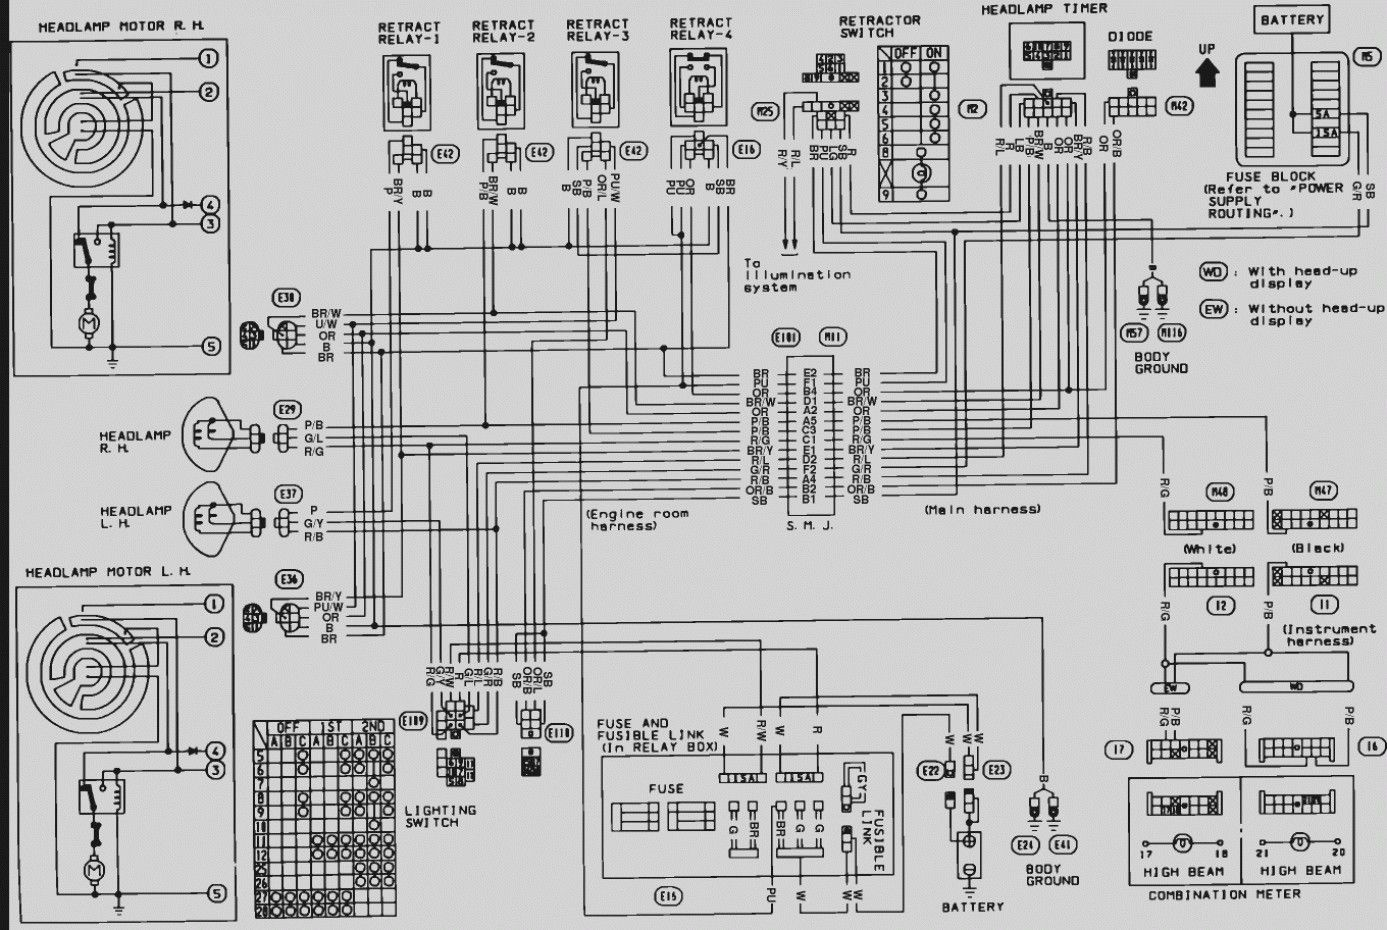 Inspirational 240sx Wiring Diagram In 2020 Electrical Circuit Diagram Circuit Diagram Diagram